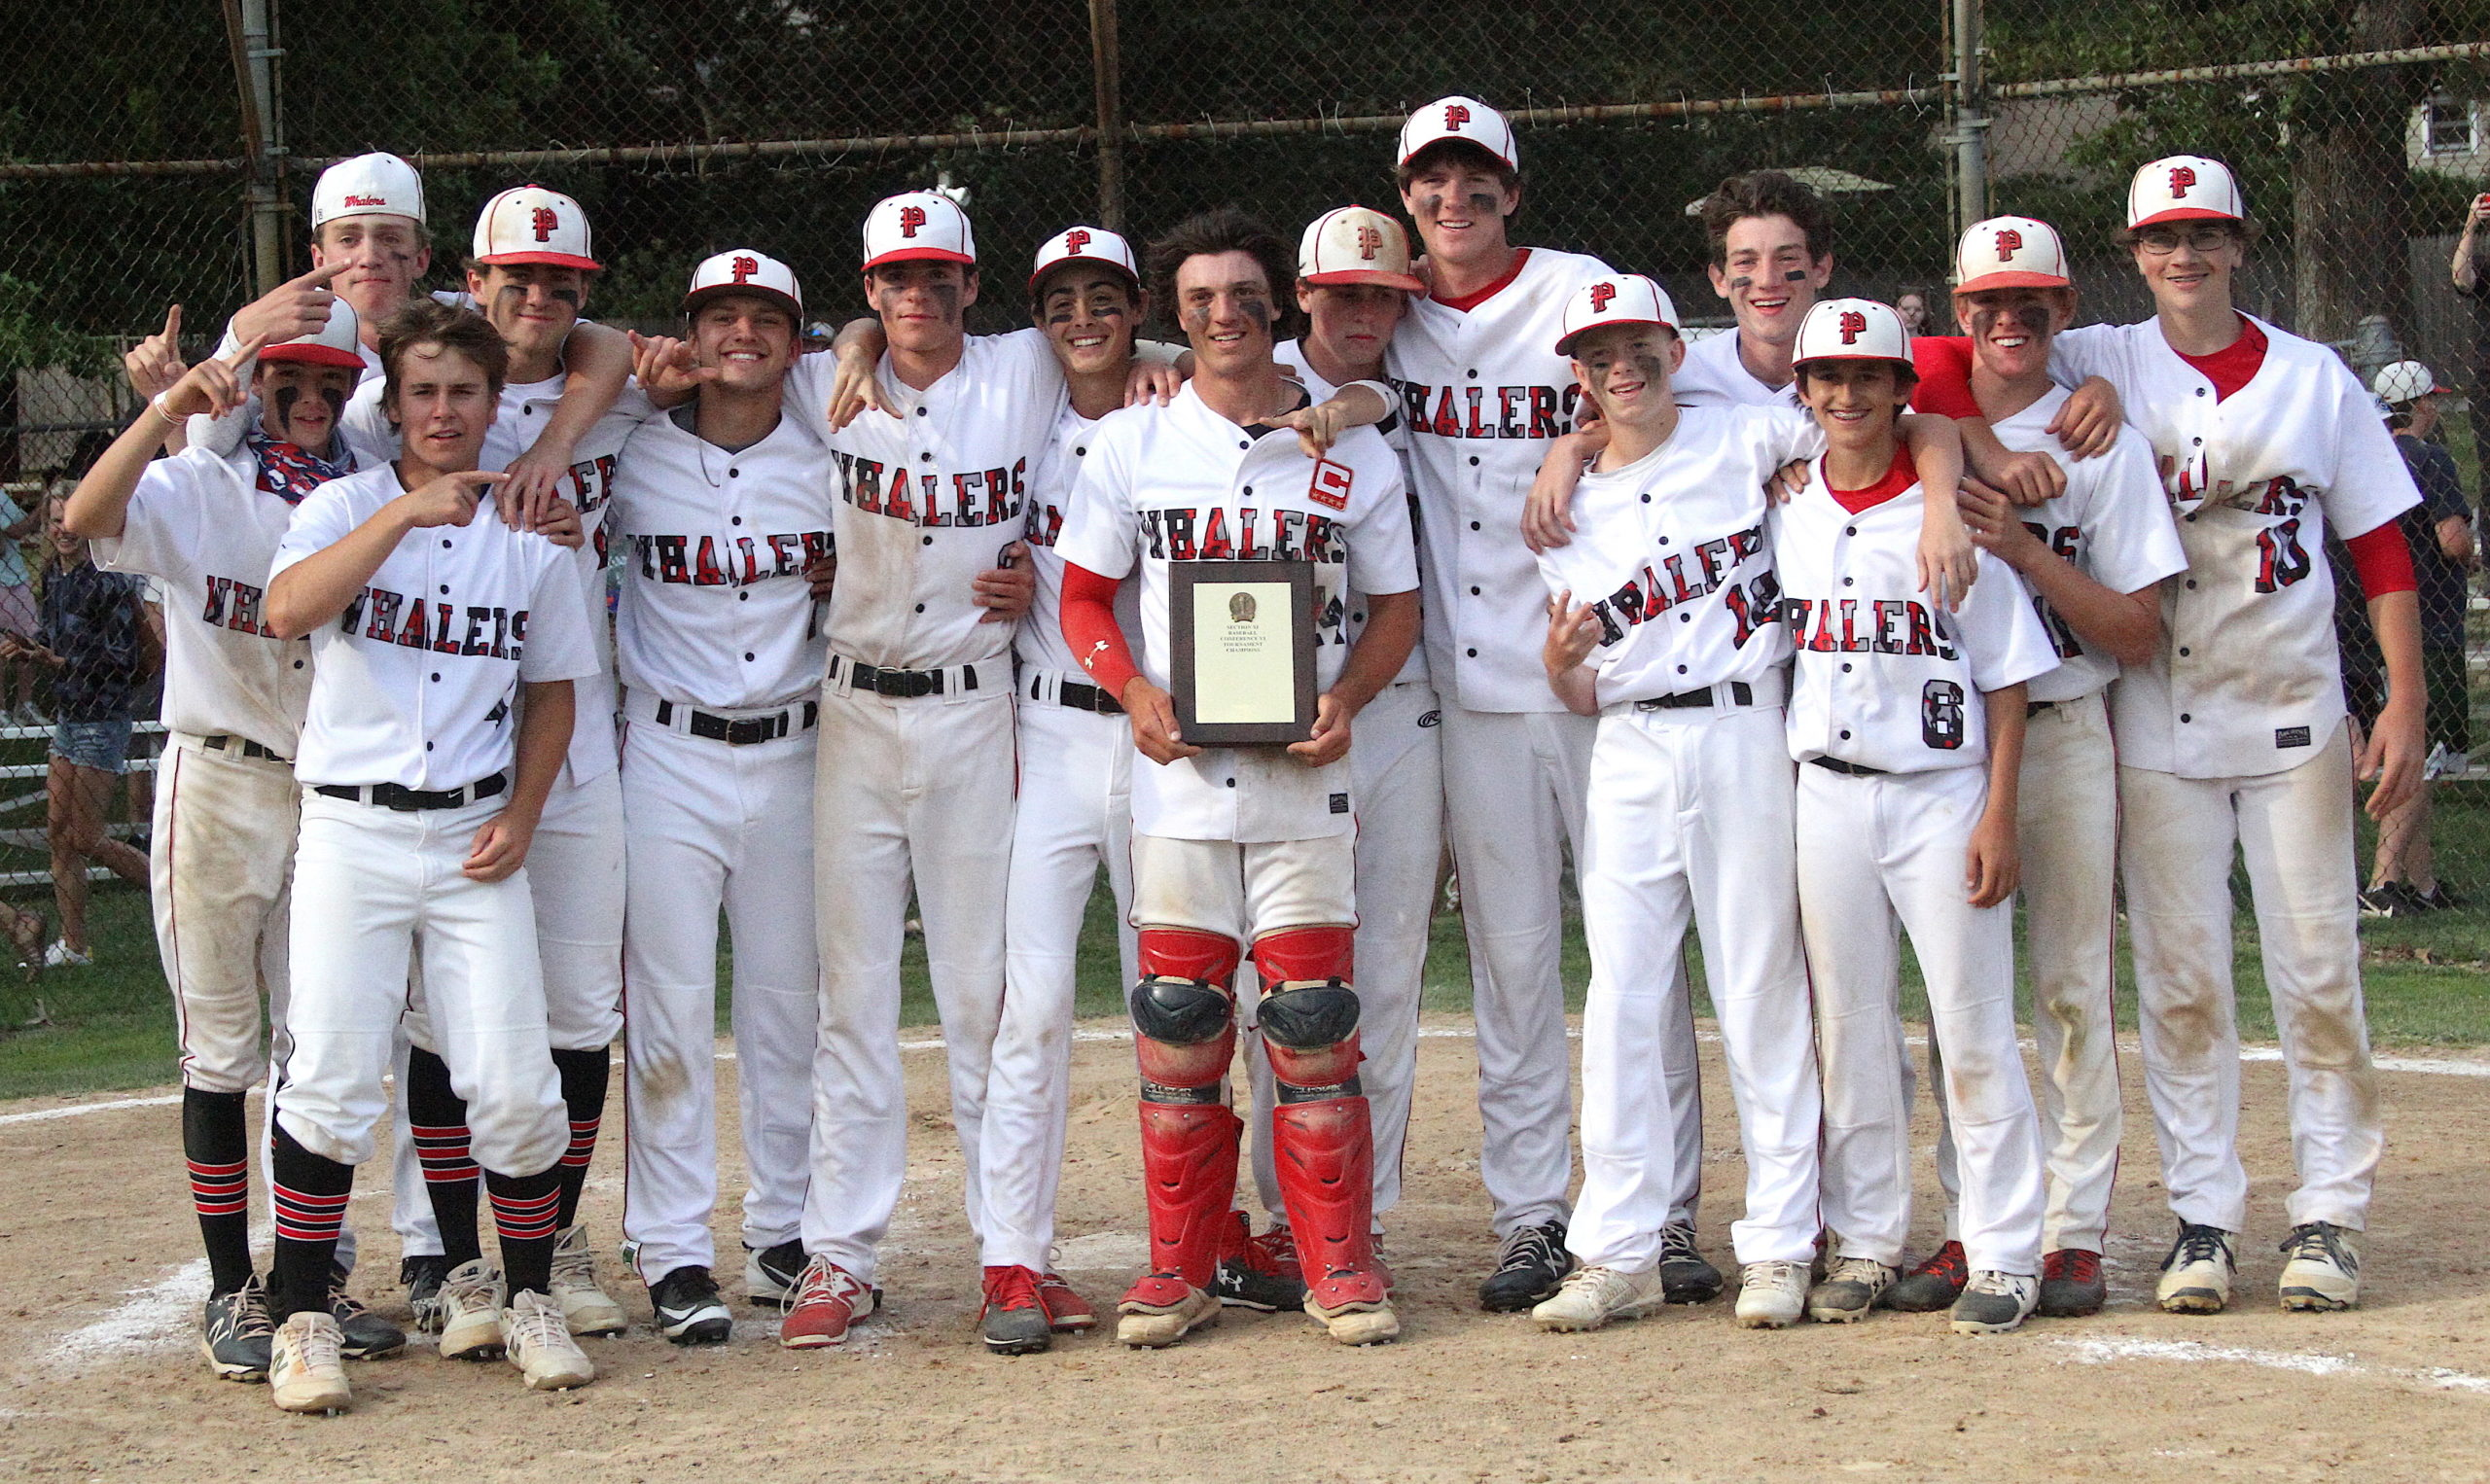 Pierson's baseball team bested Southold, 5-4, for the Whalers' second straight Suffolk County title. DESIRÉE KEEGAN